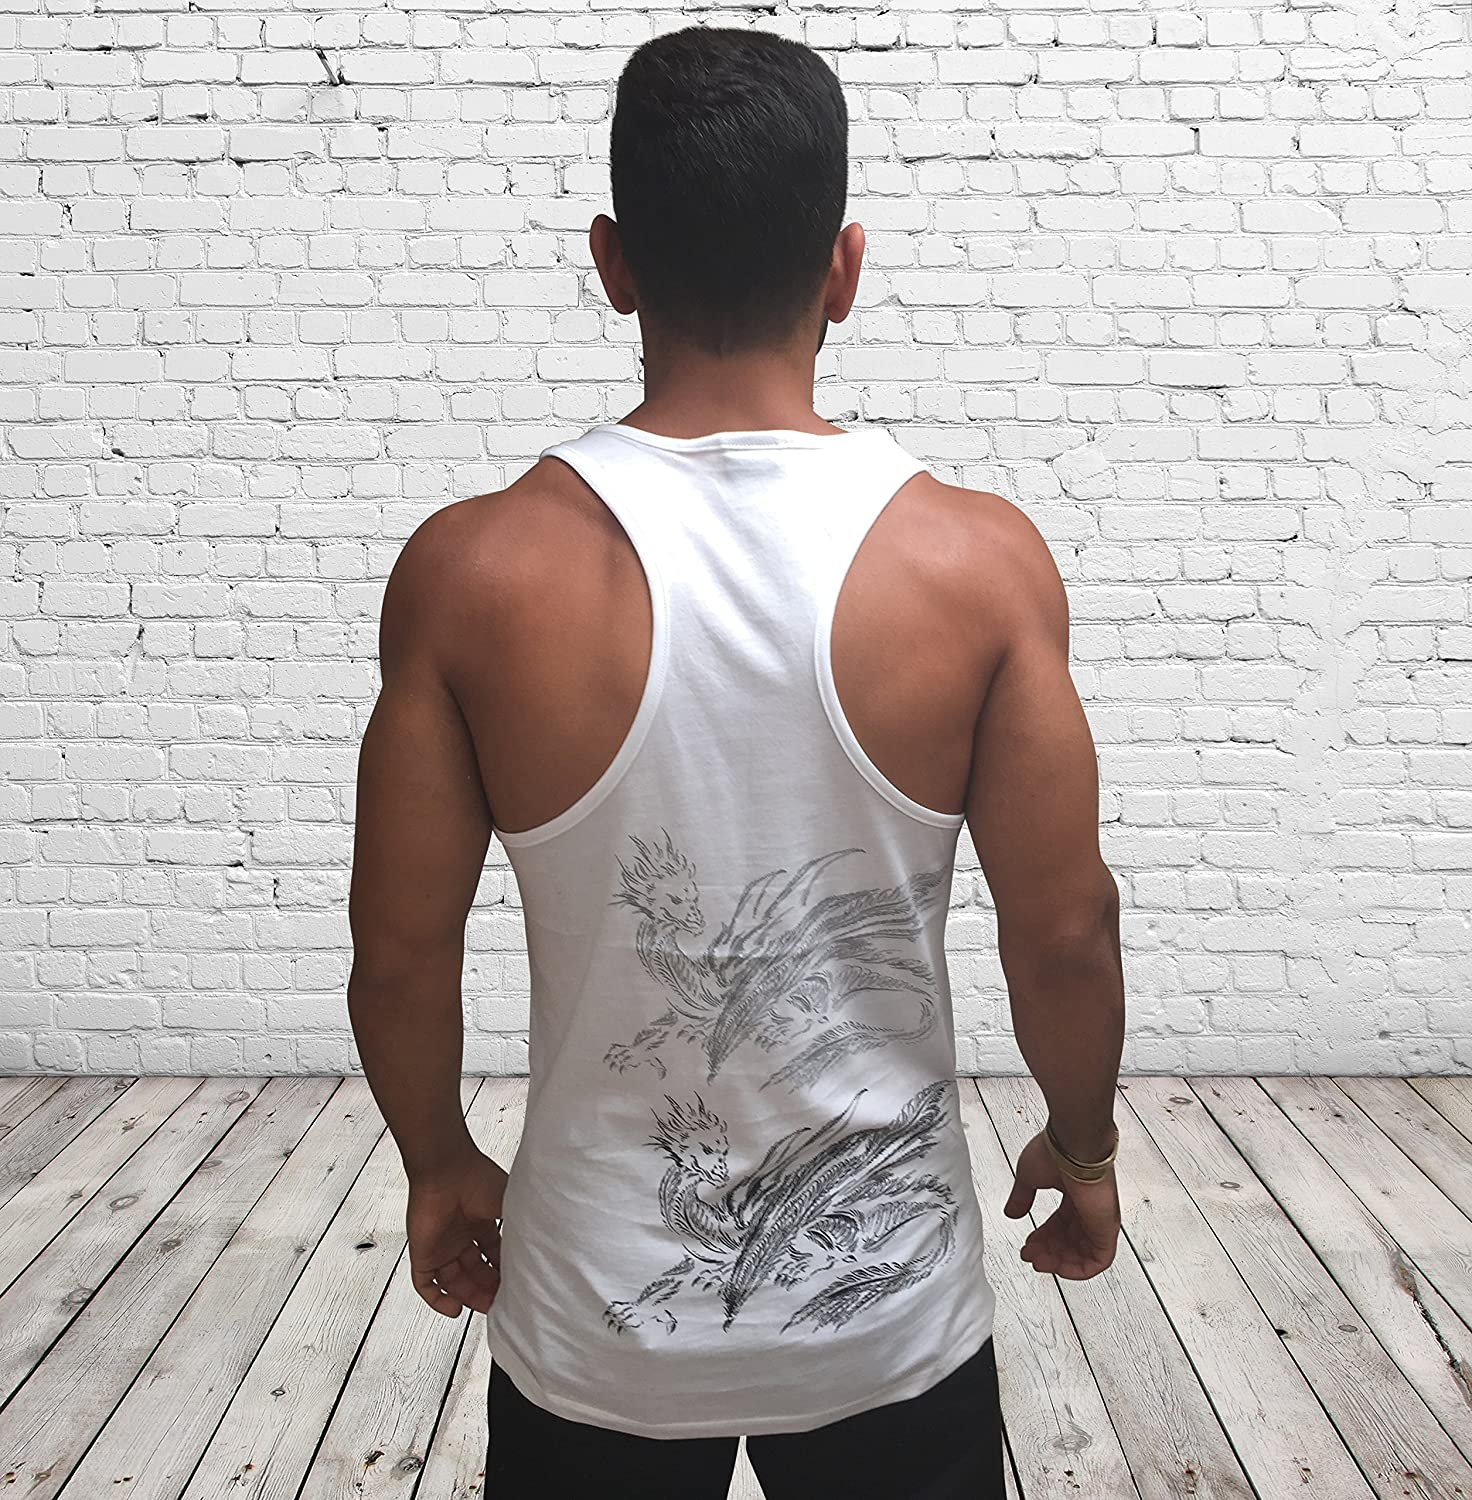 Men's White Tank Top Max 58% OFF Sleeveless Training S Printed Dragon Vest Product